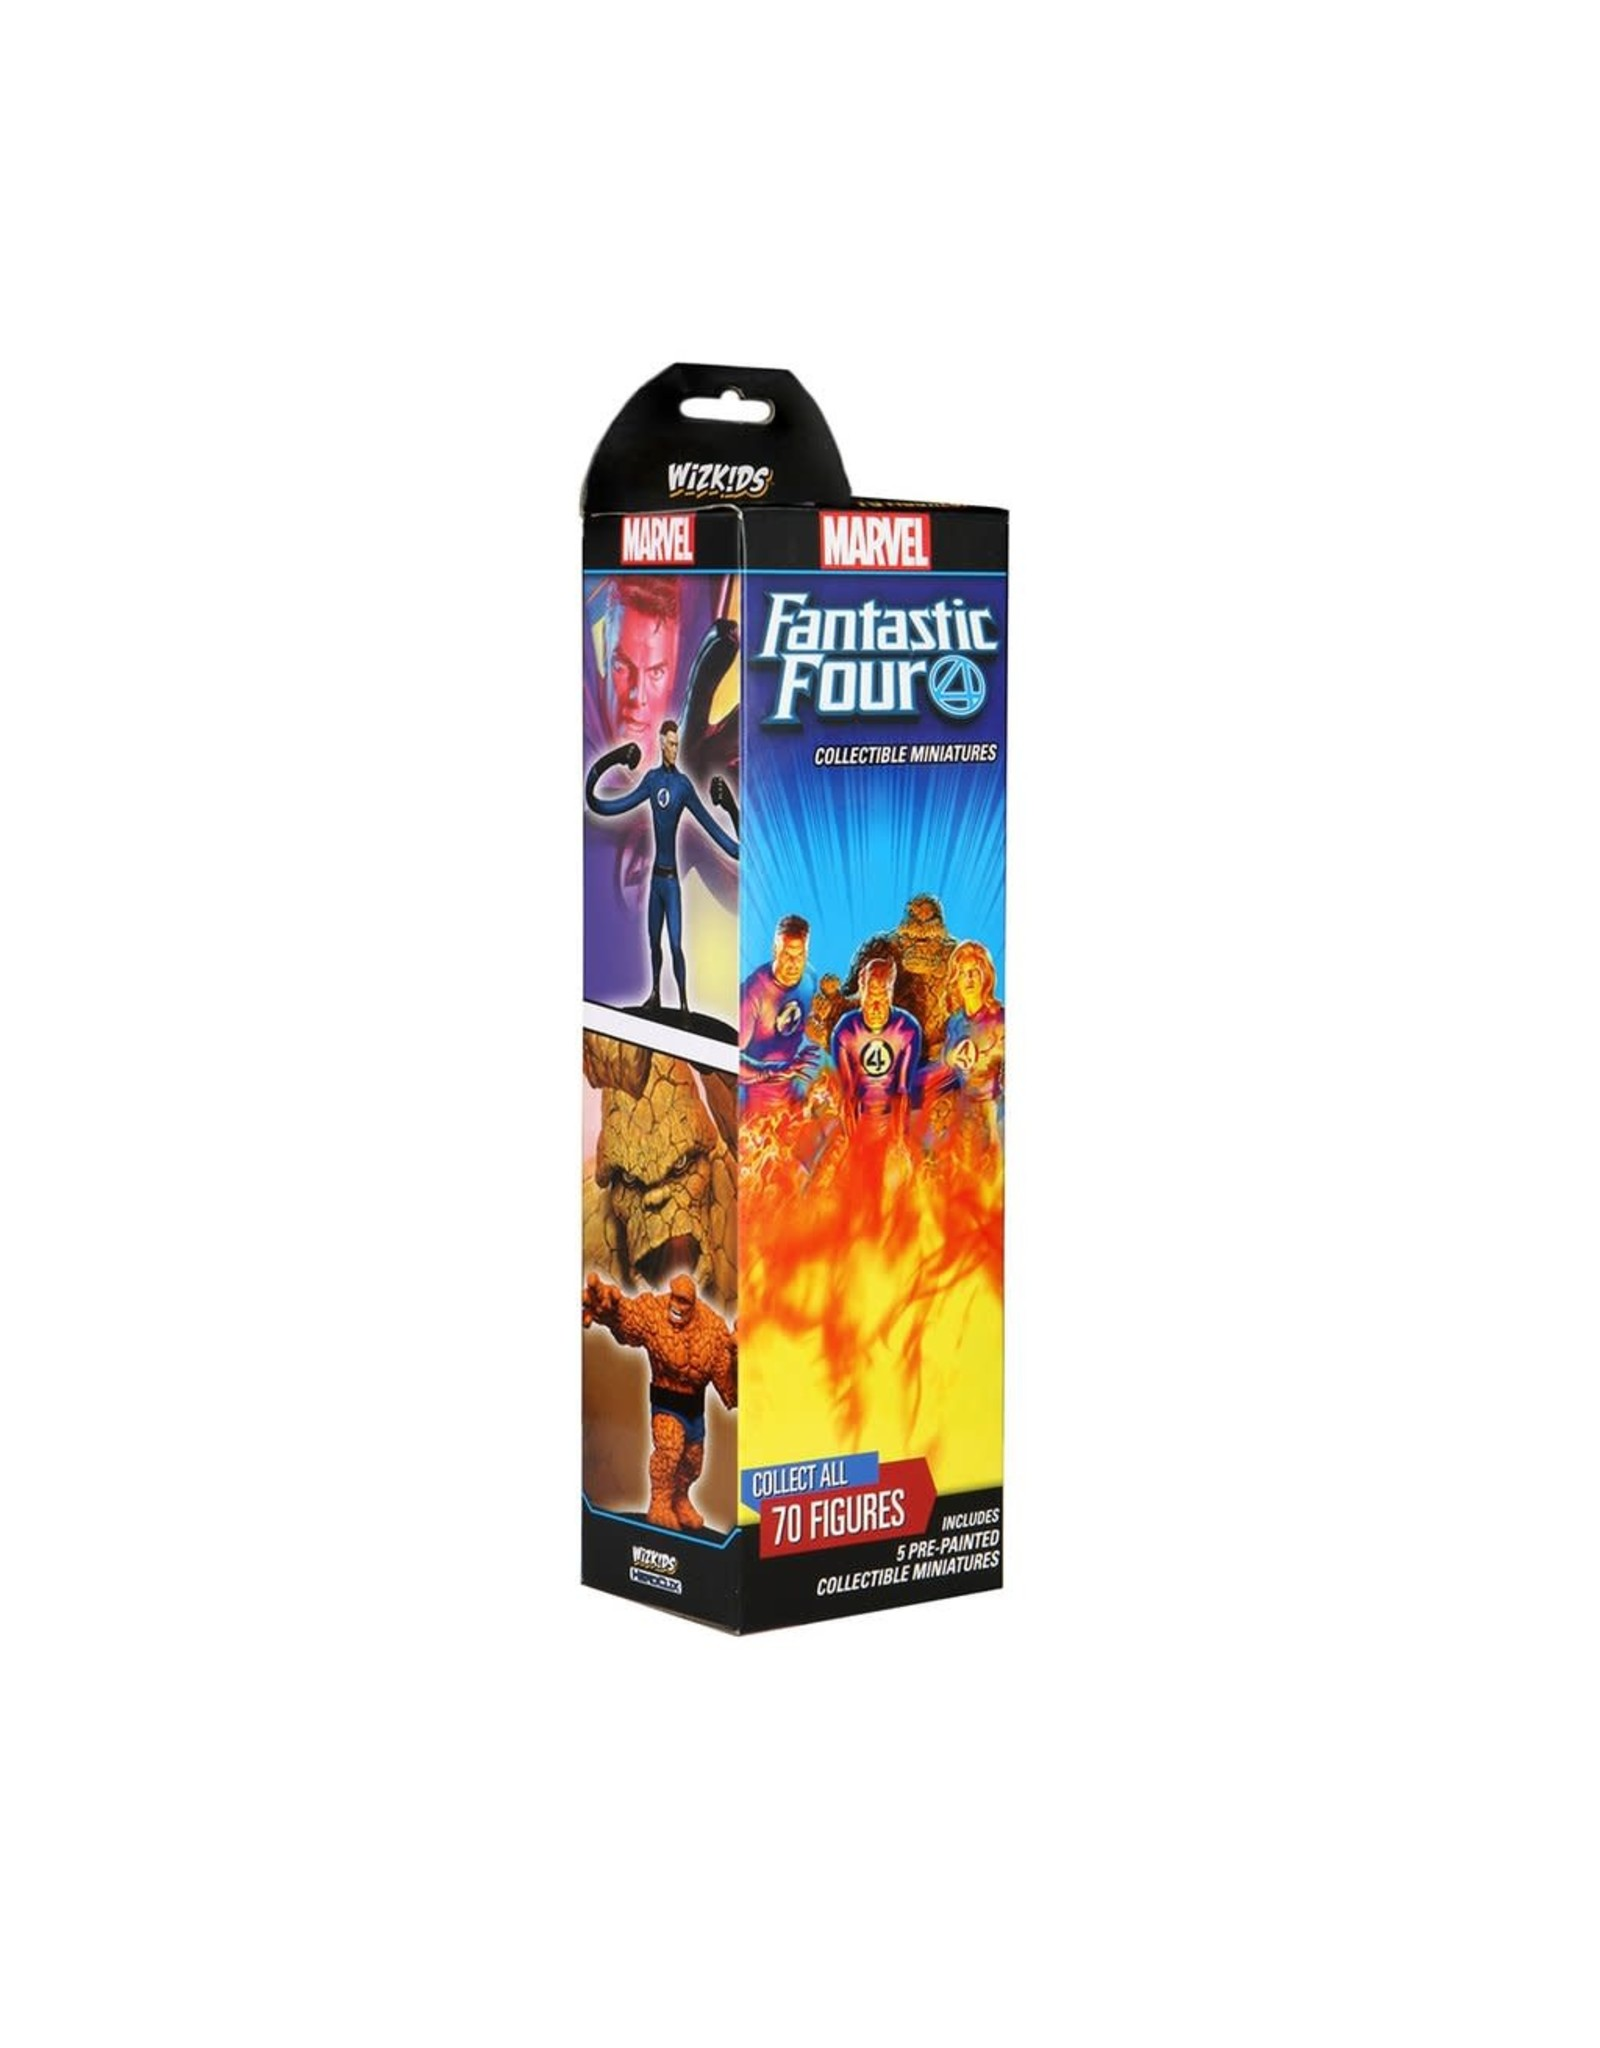 WizKids Marvel HeroClix: Fantastic Four Booster